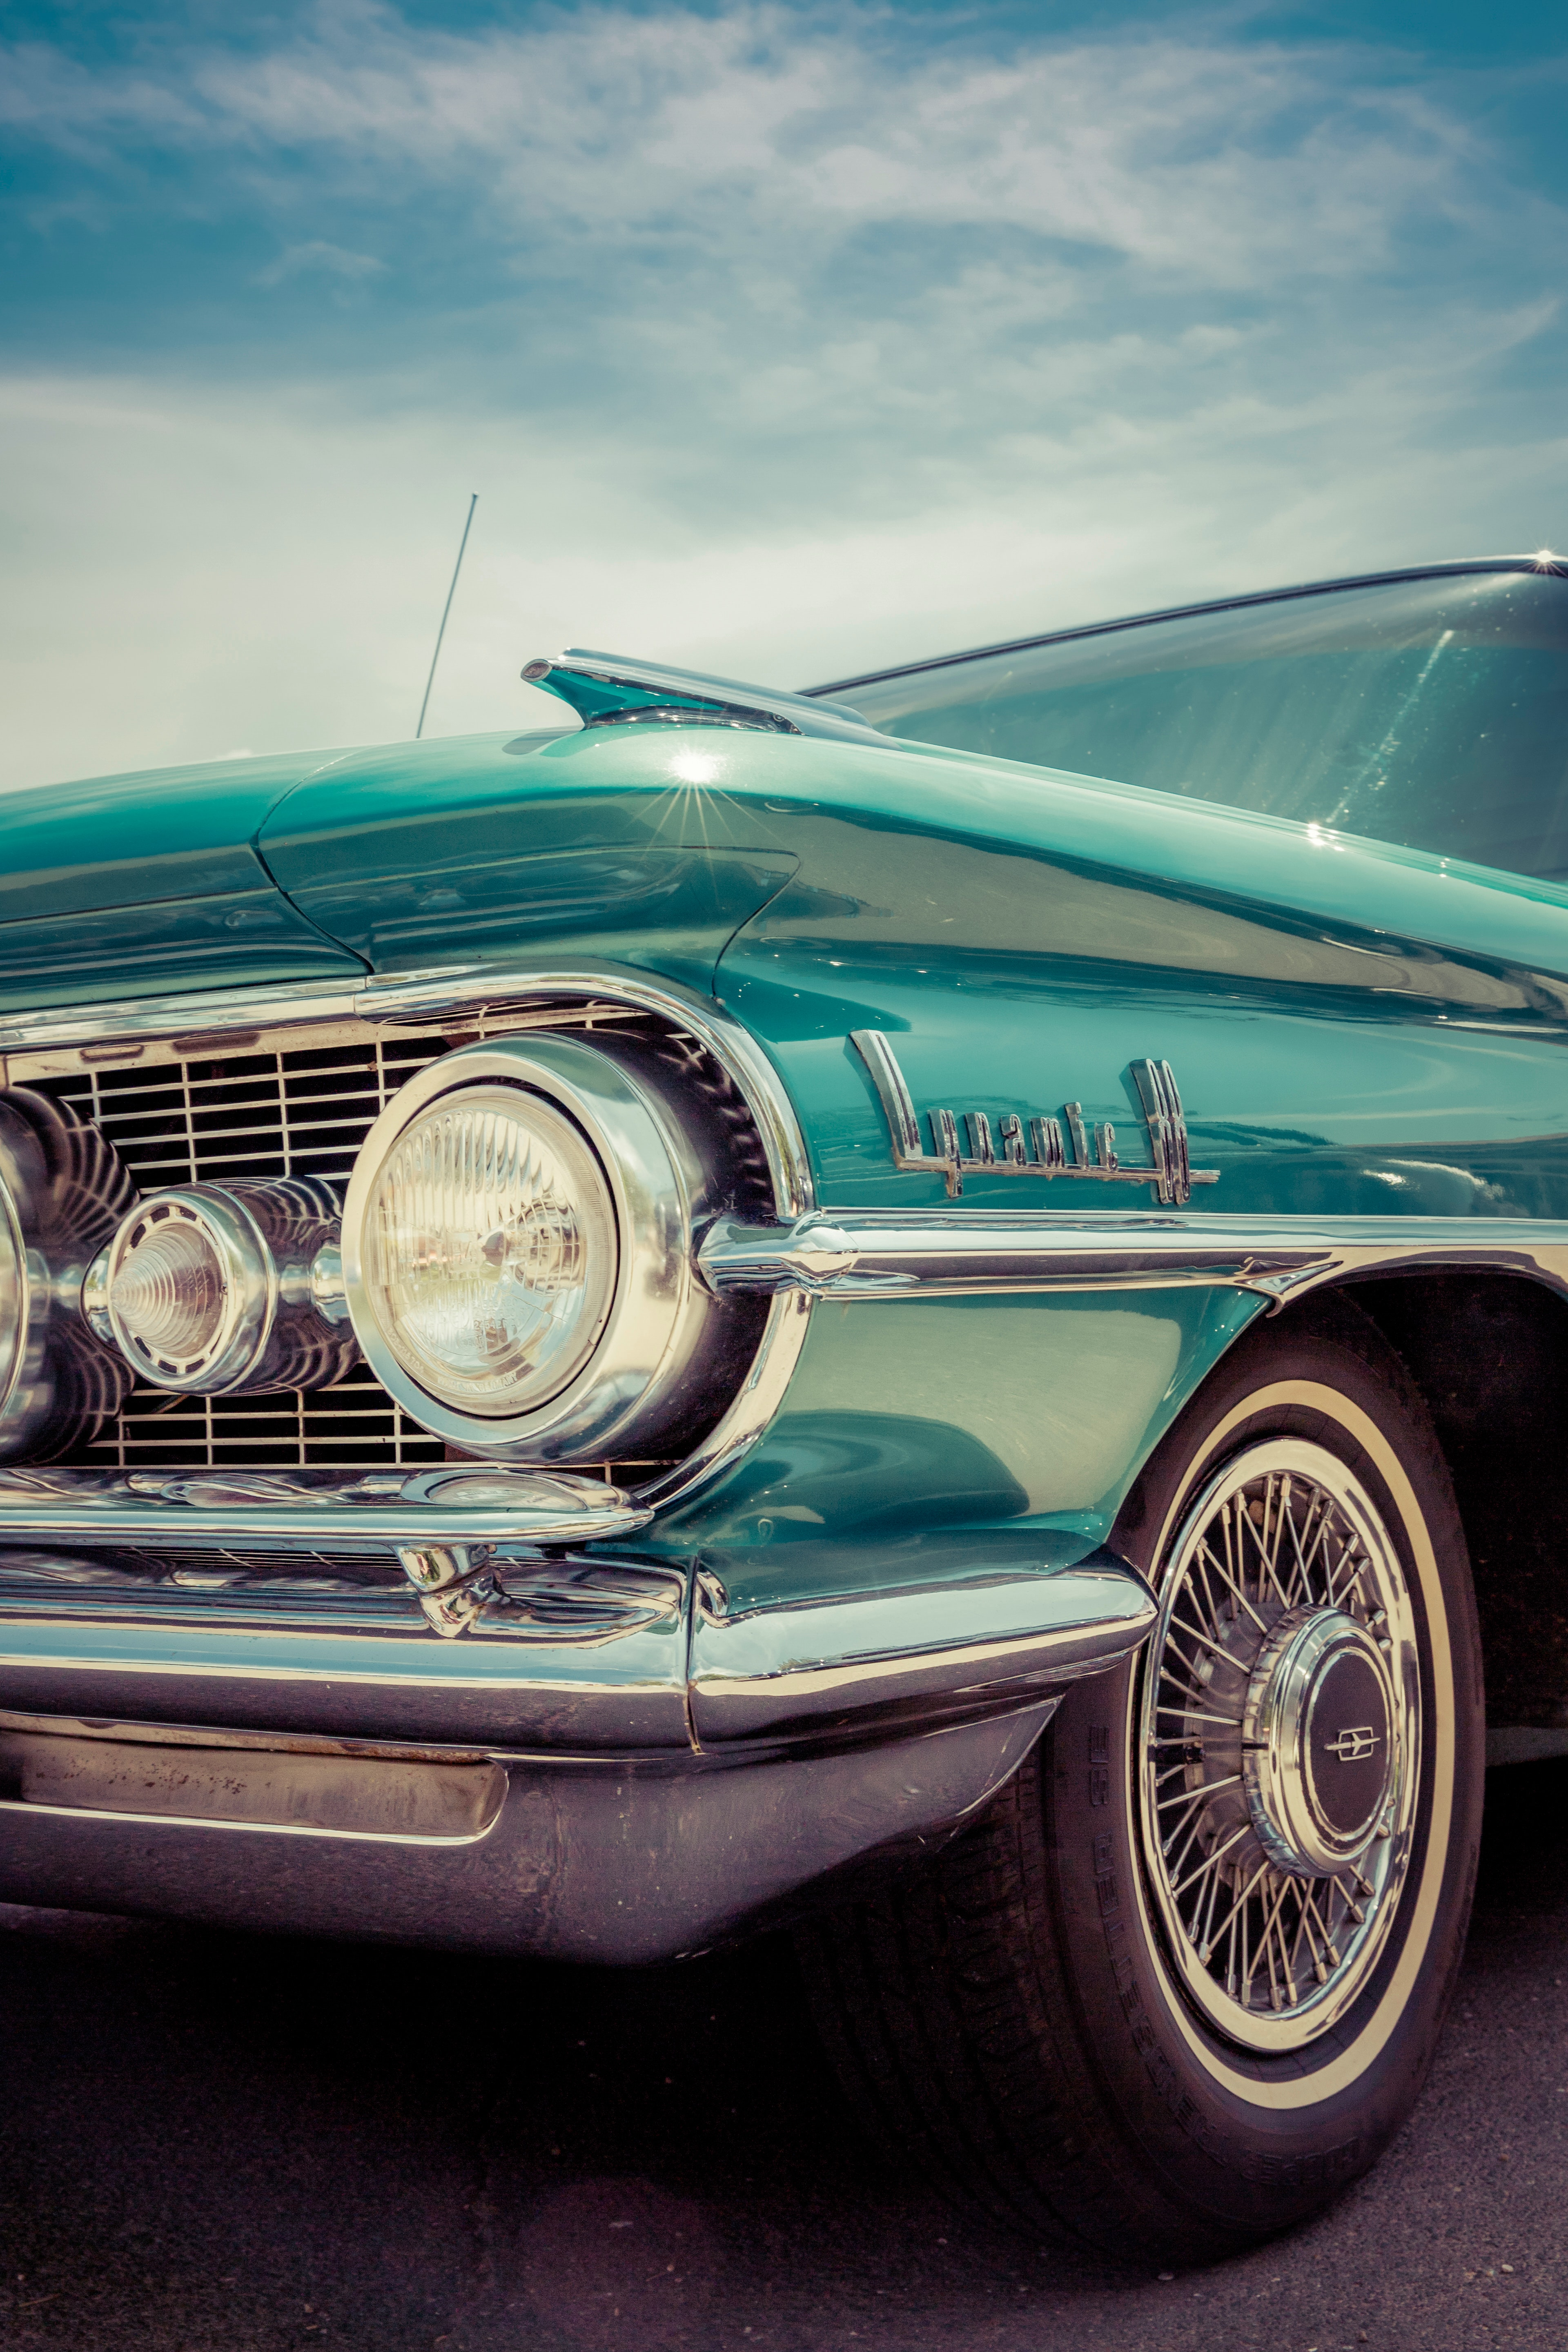 1000 beautiful vintage car photos pexels free stock photos - Classic car pics ...